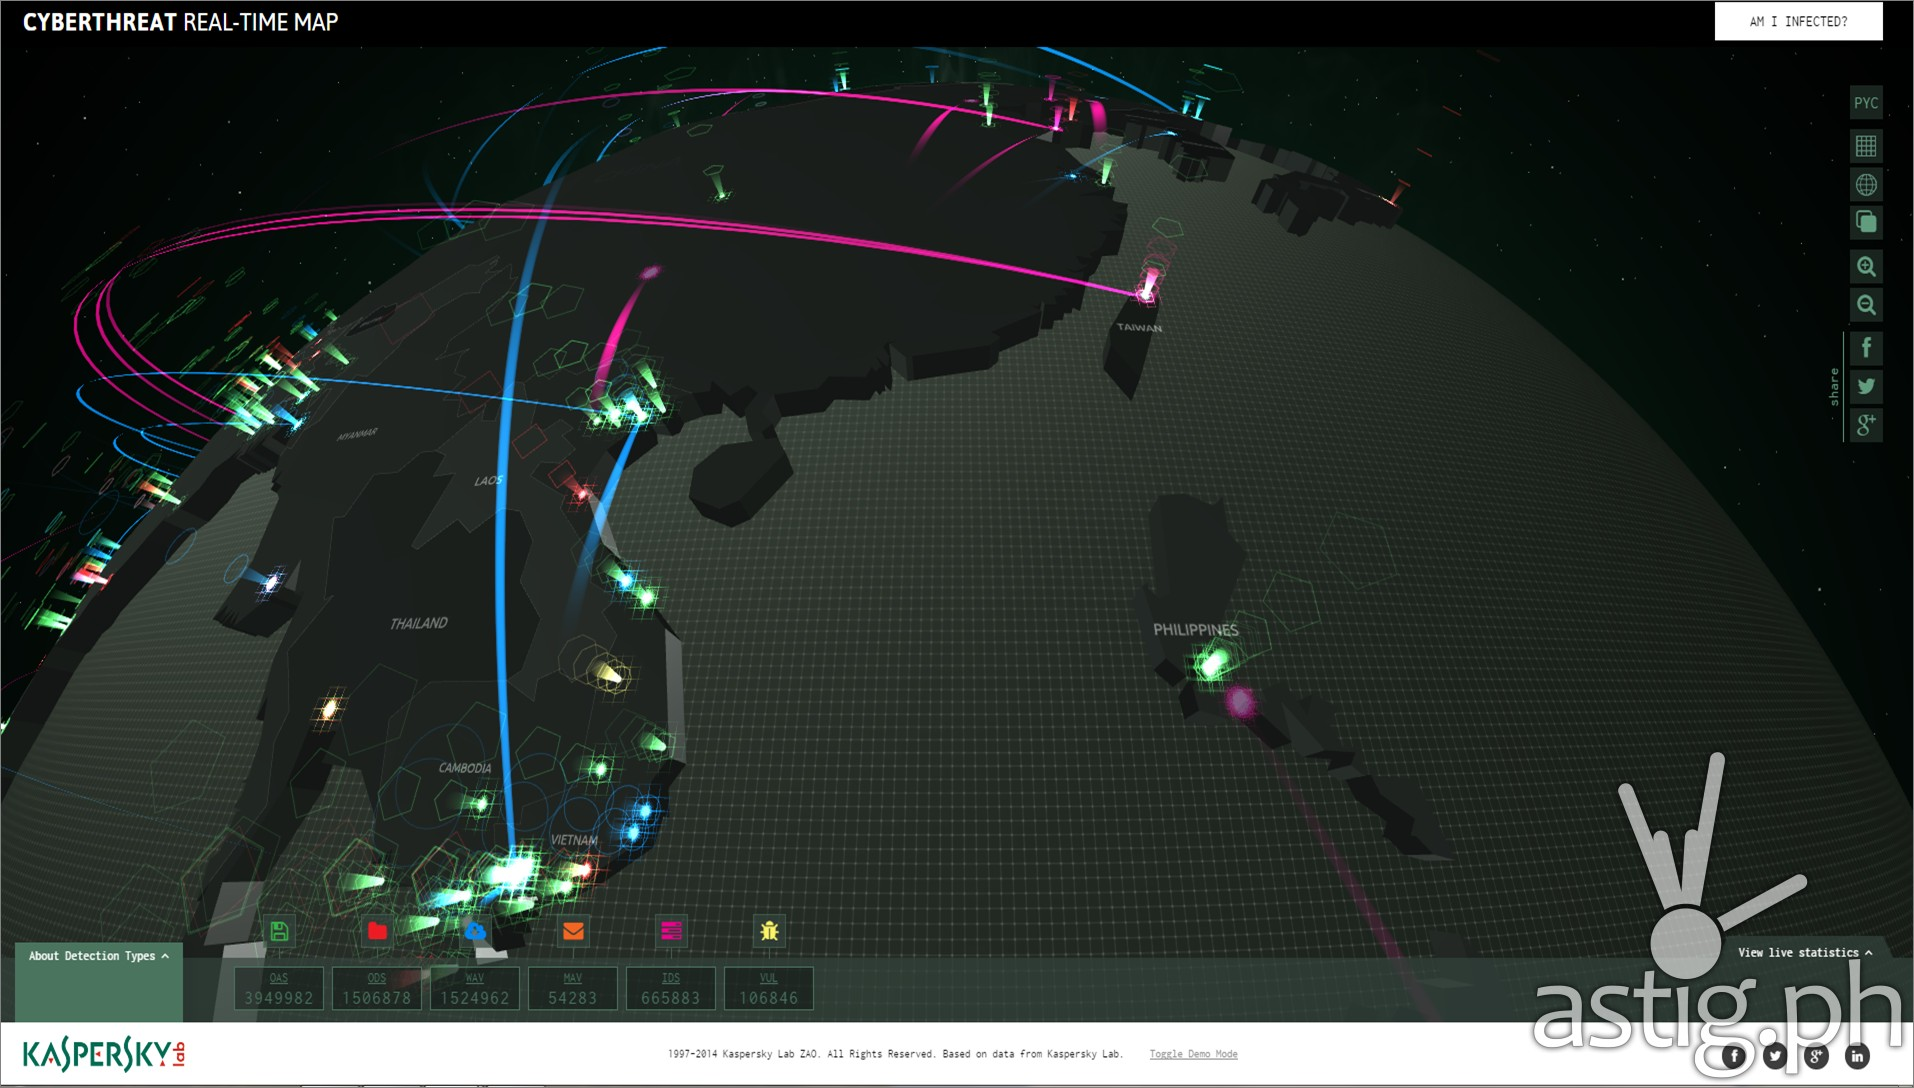 Cyberthreat Real-time Map Kaspersky